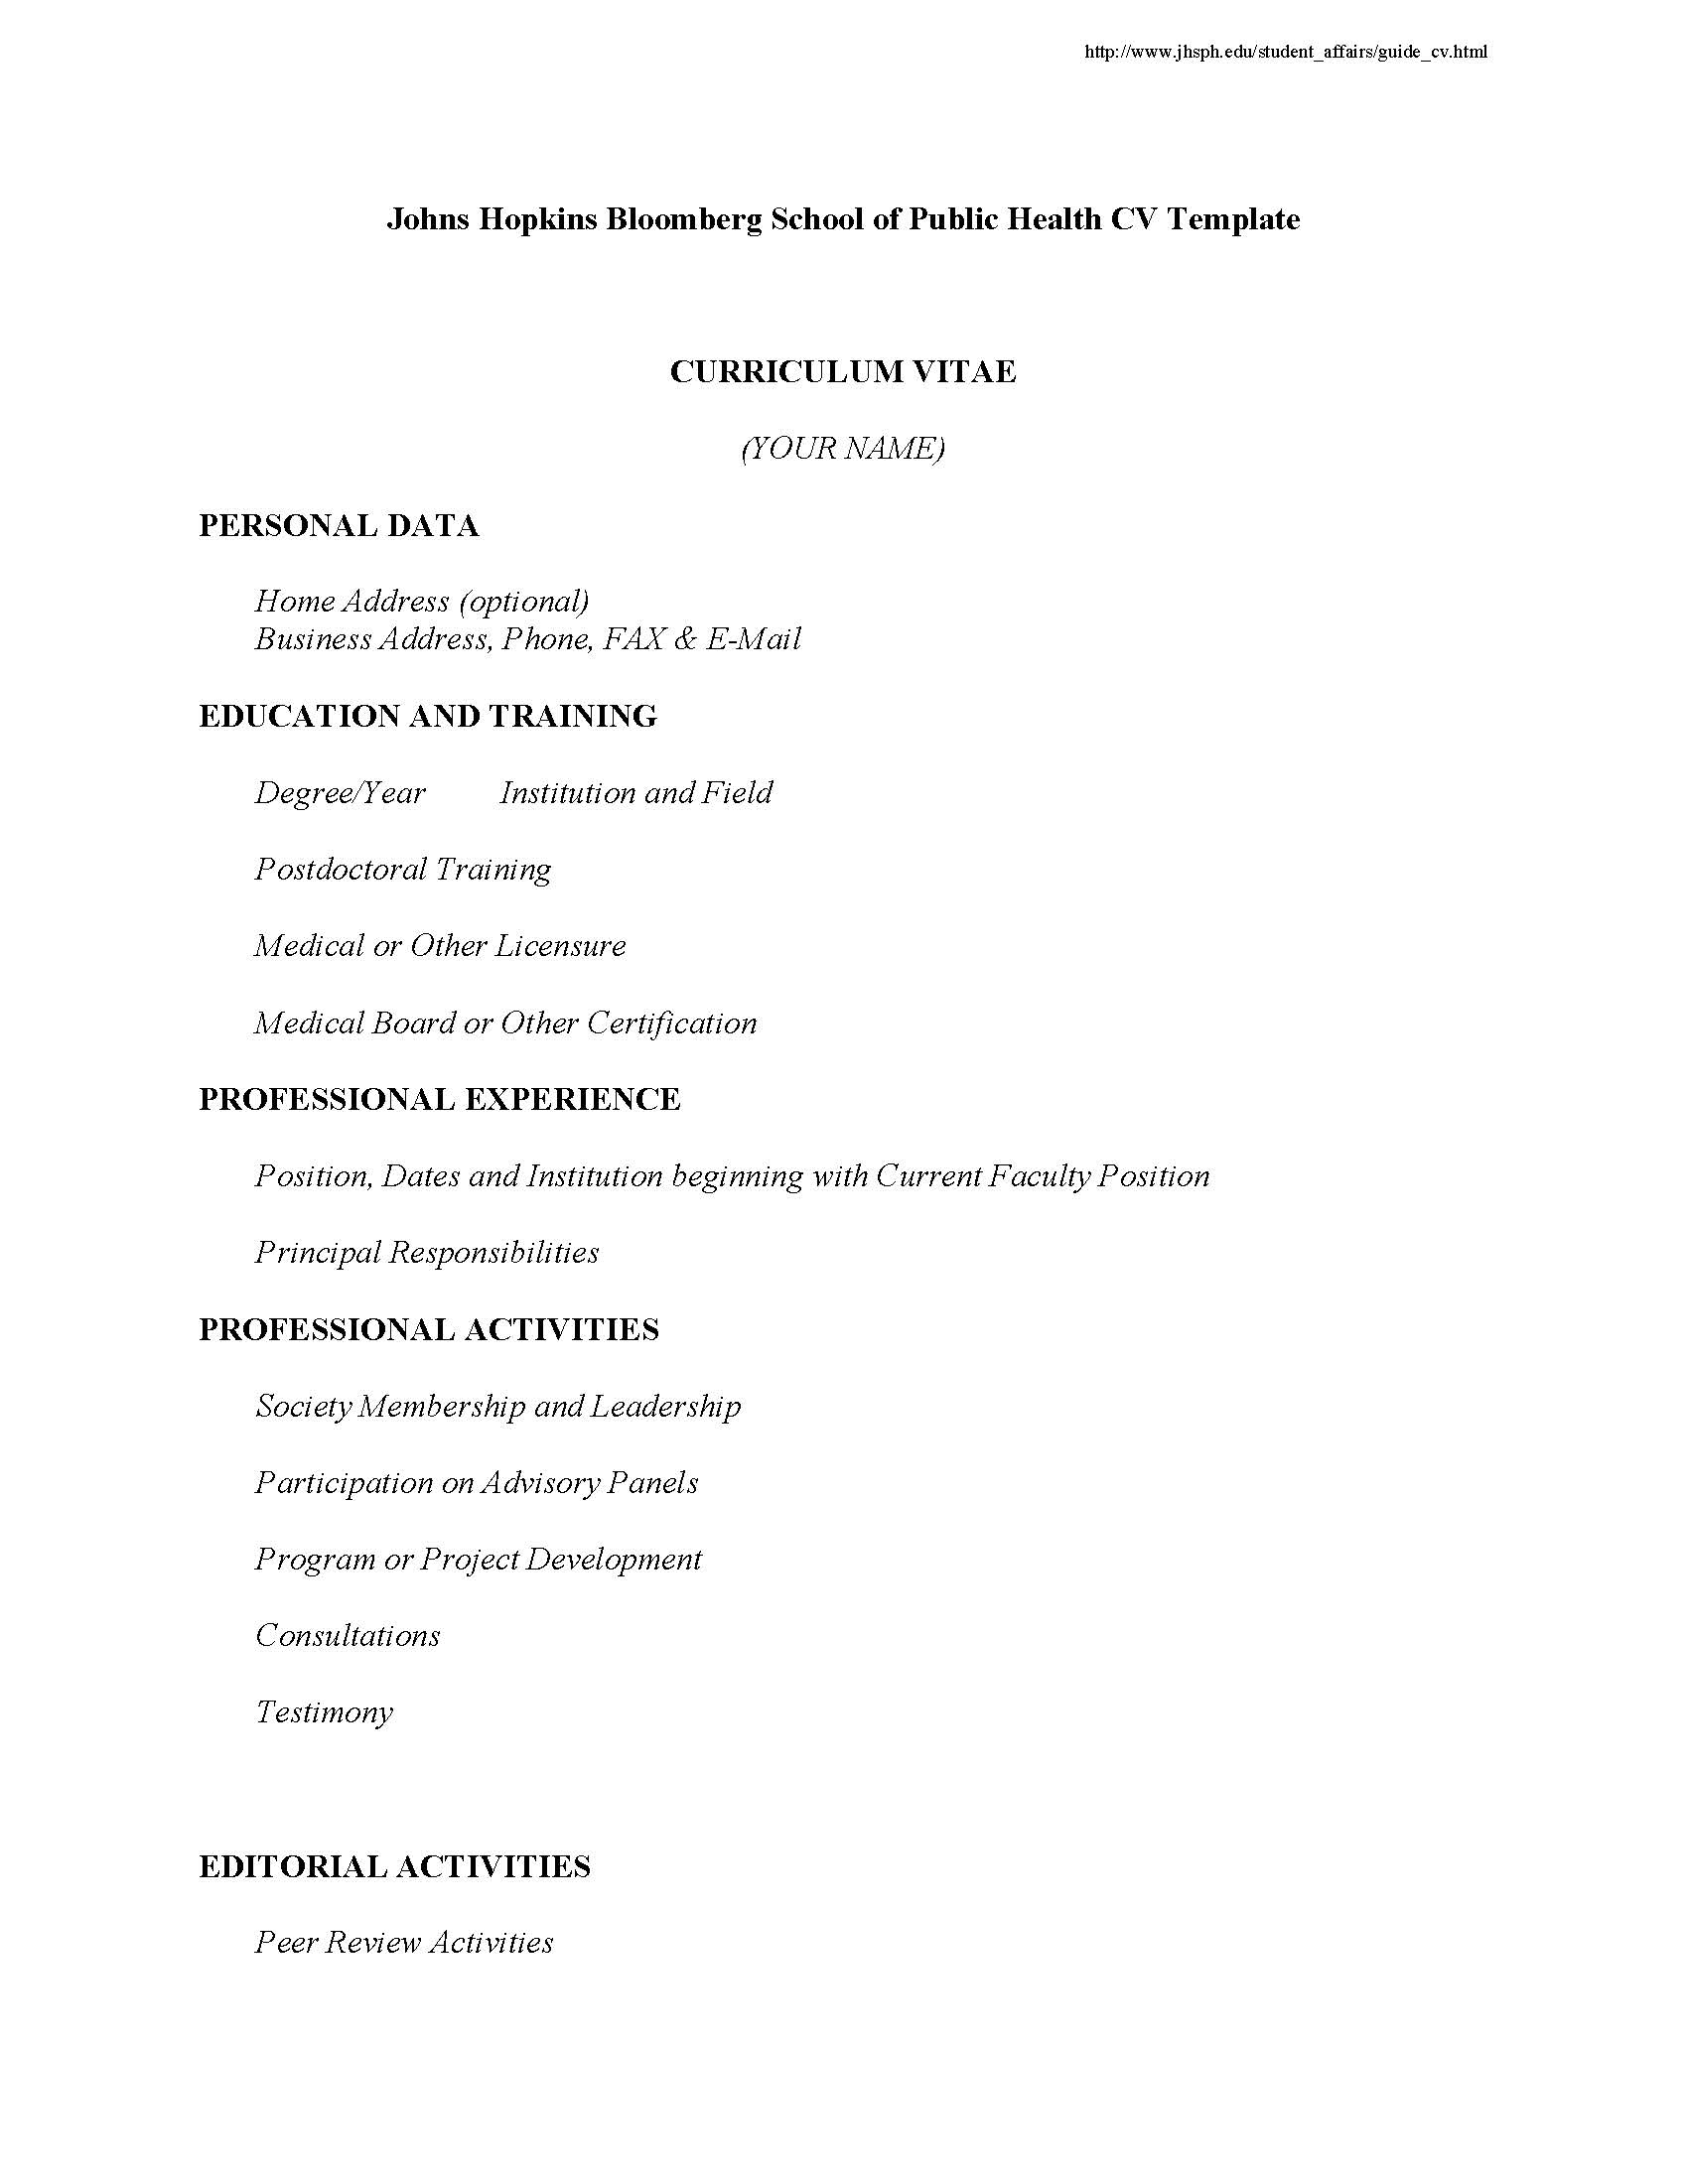 cv sample resume - gse.bookbinder.co, Presentation templates